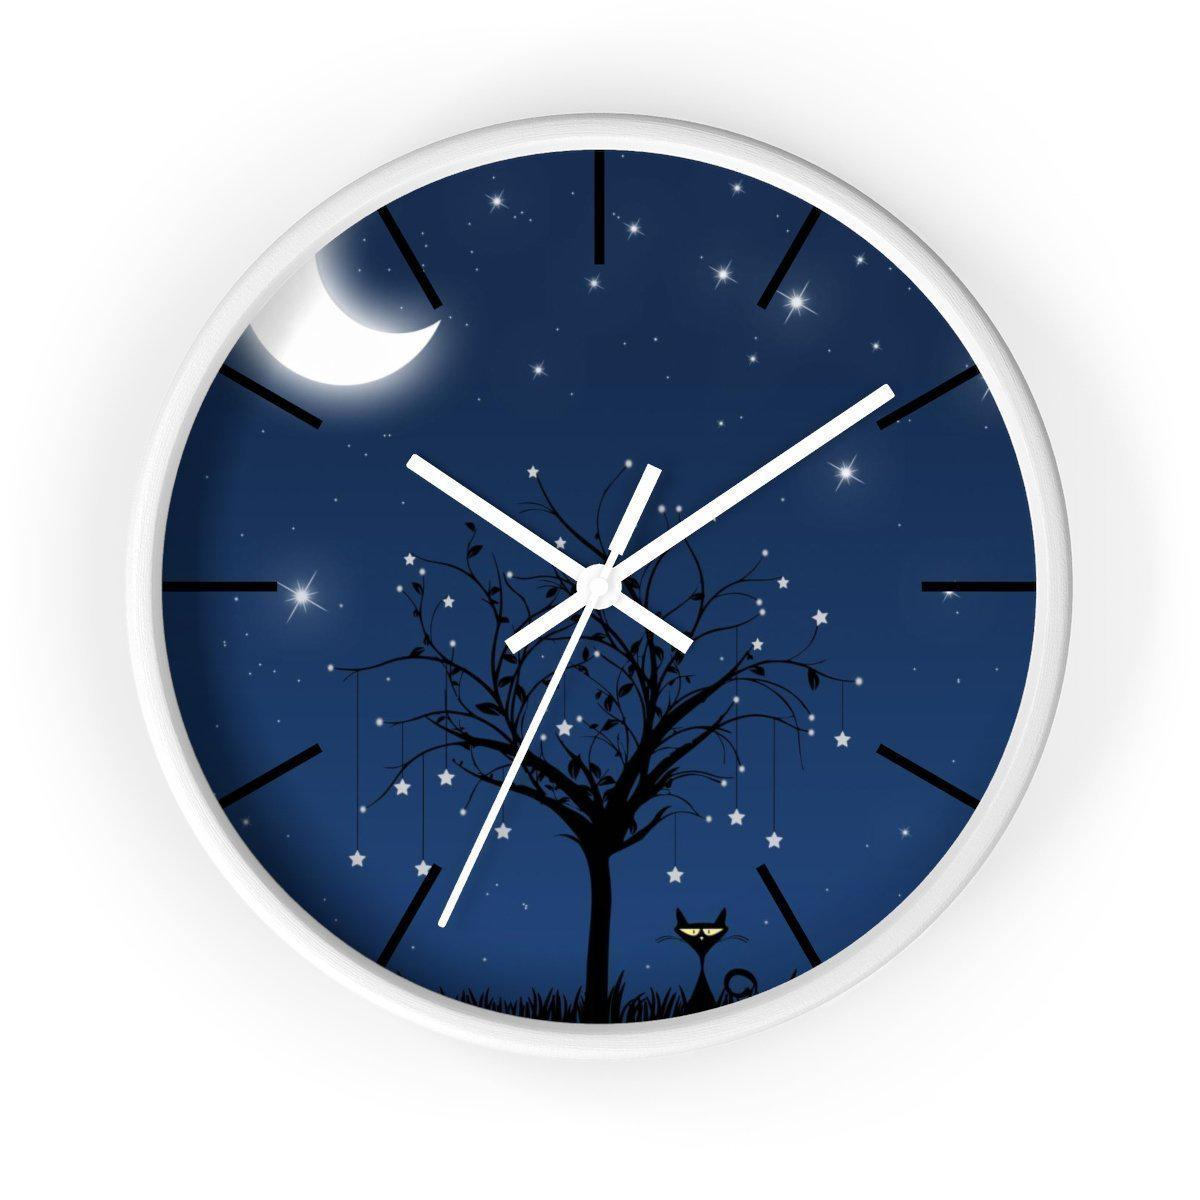 Maison d'Elite Moonlight Wall clock-Home Décor › Accents › Wall Decor › Clocks & Sculptures-Maison d'Elite-White-White-Très Elite